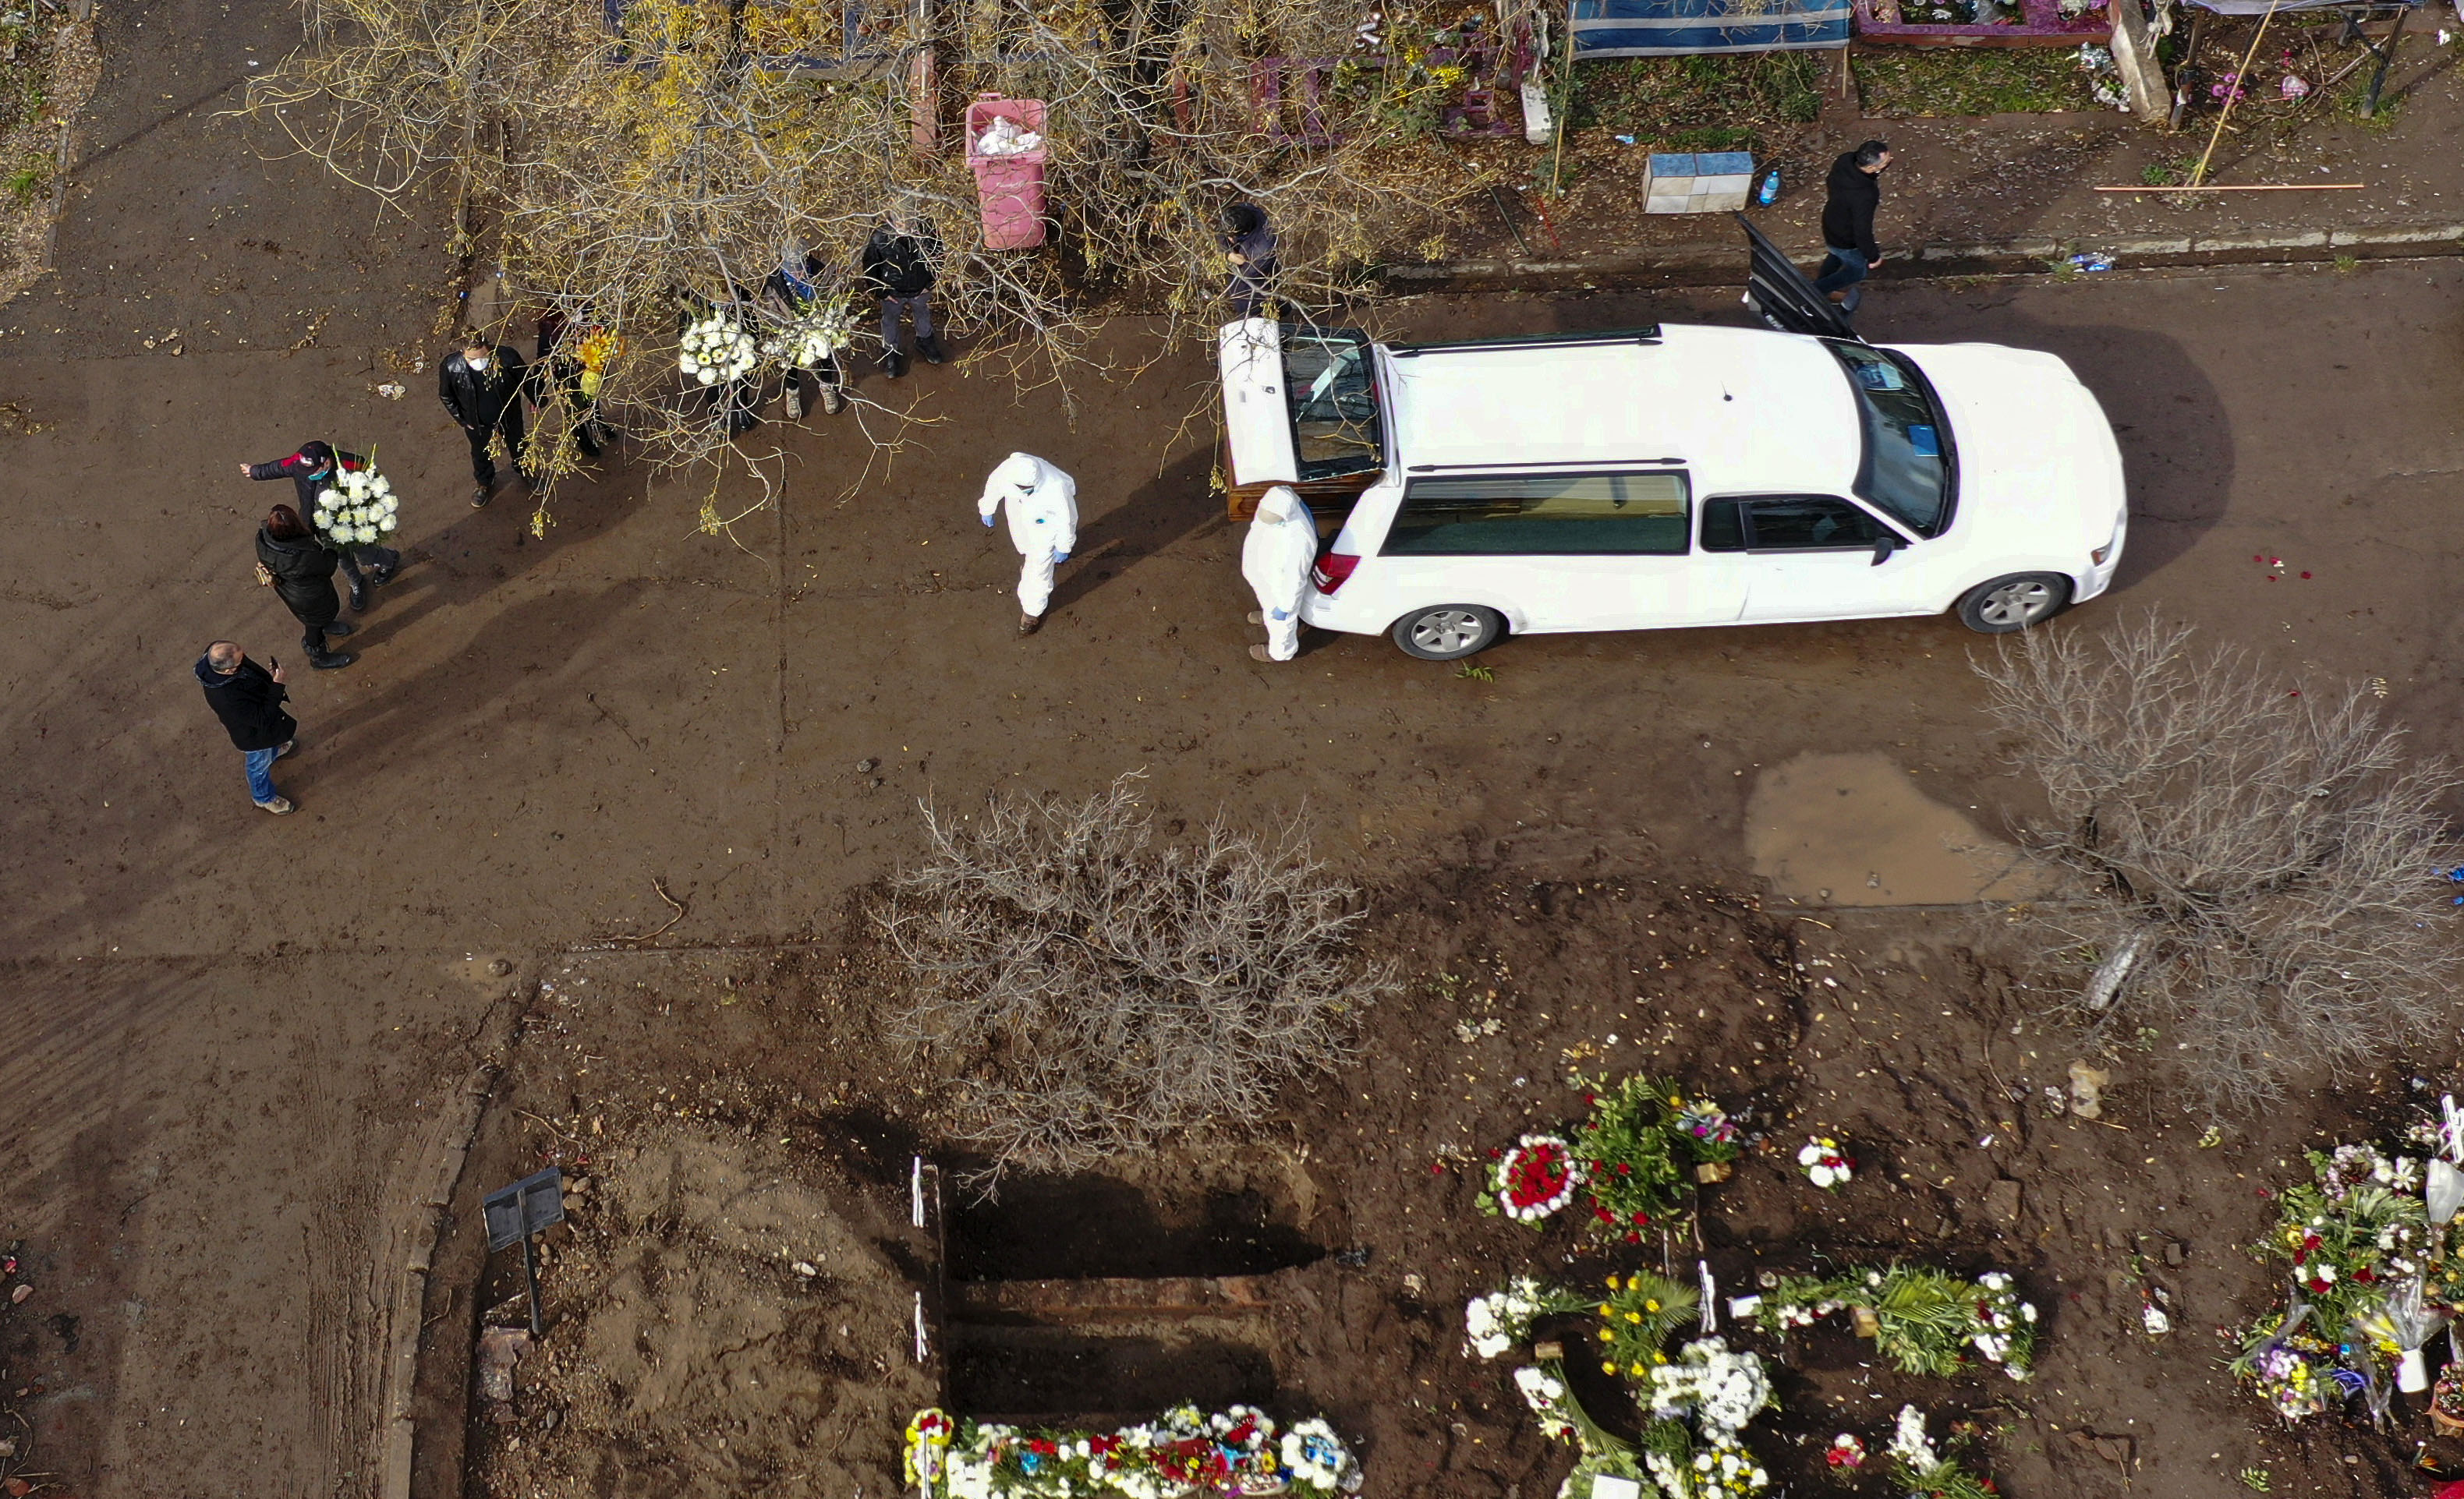 A person said to have died from Covid-19 is brought for burial to the General Cemetery in Santiago, Chile, on June 23.